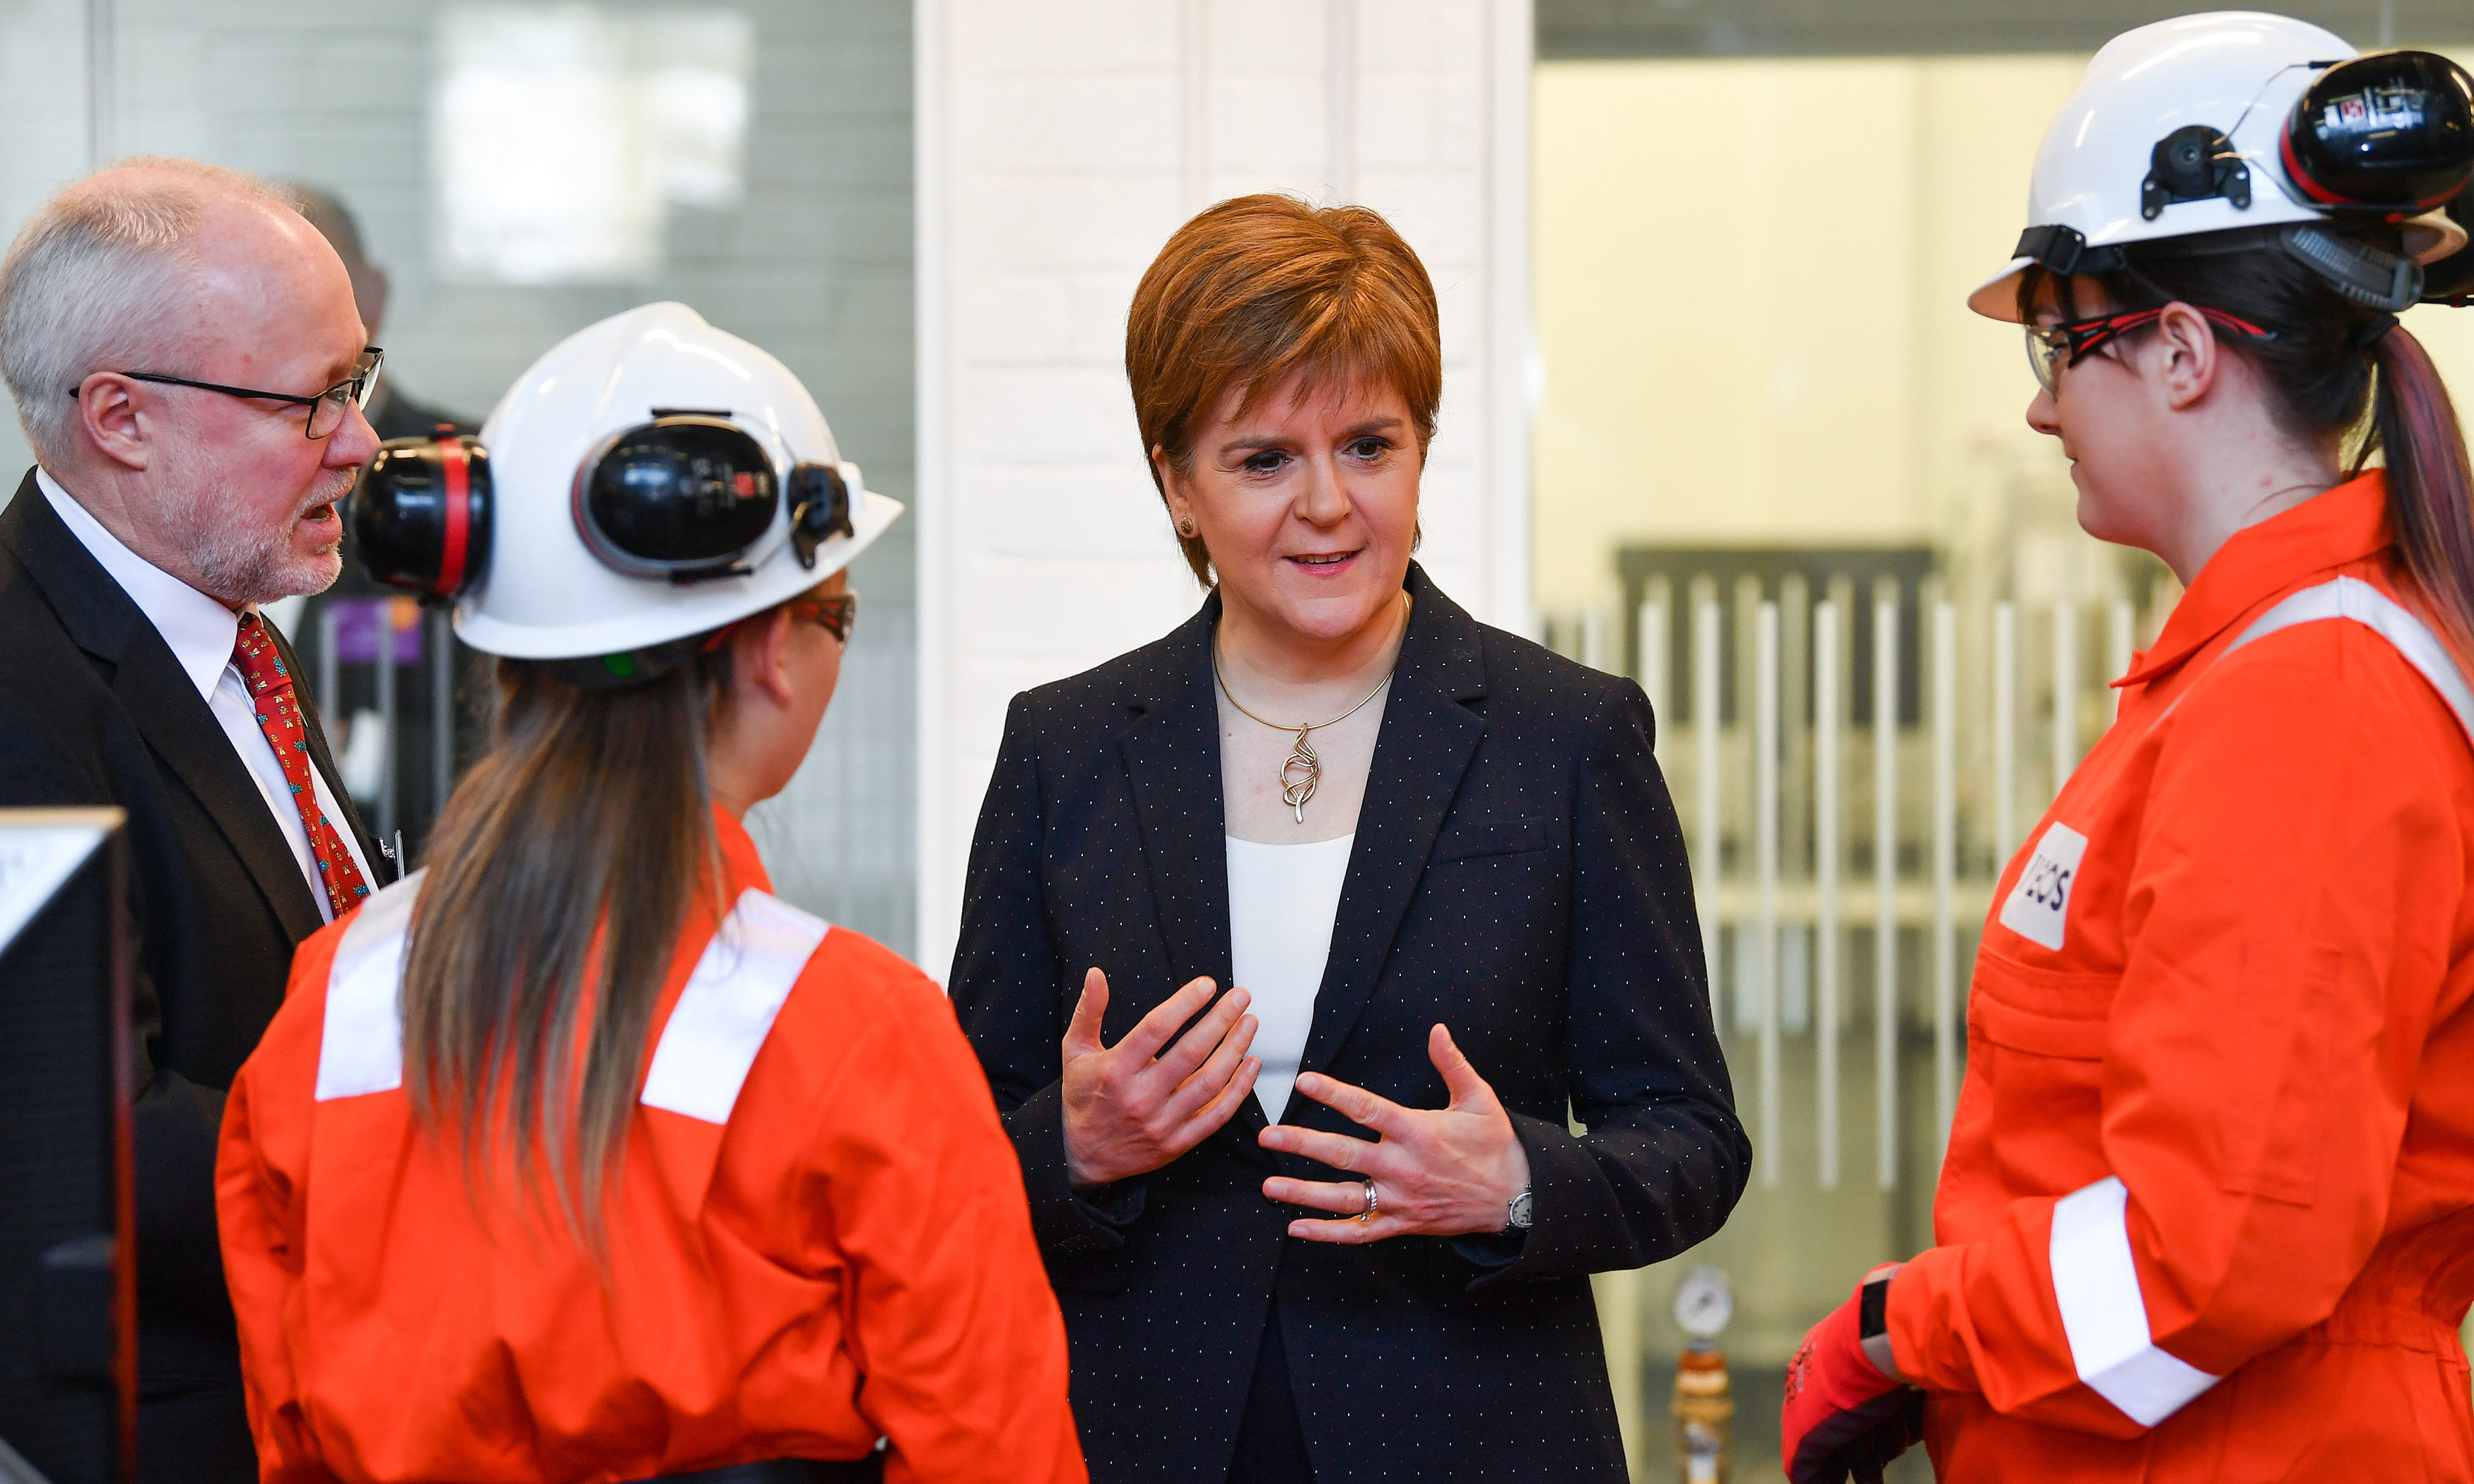 First Minister Nicola Sturgeon meets with Modern Apprentices during a visit to Forth Valley College in Falkirk to mark Scottish Apprenticeship Week.